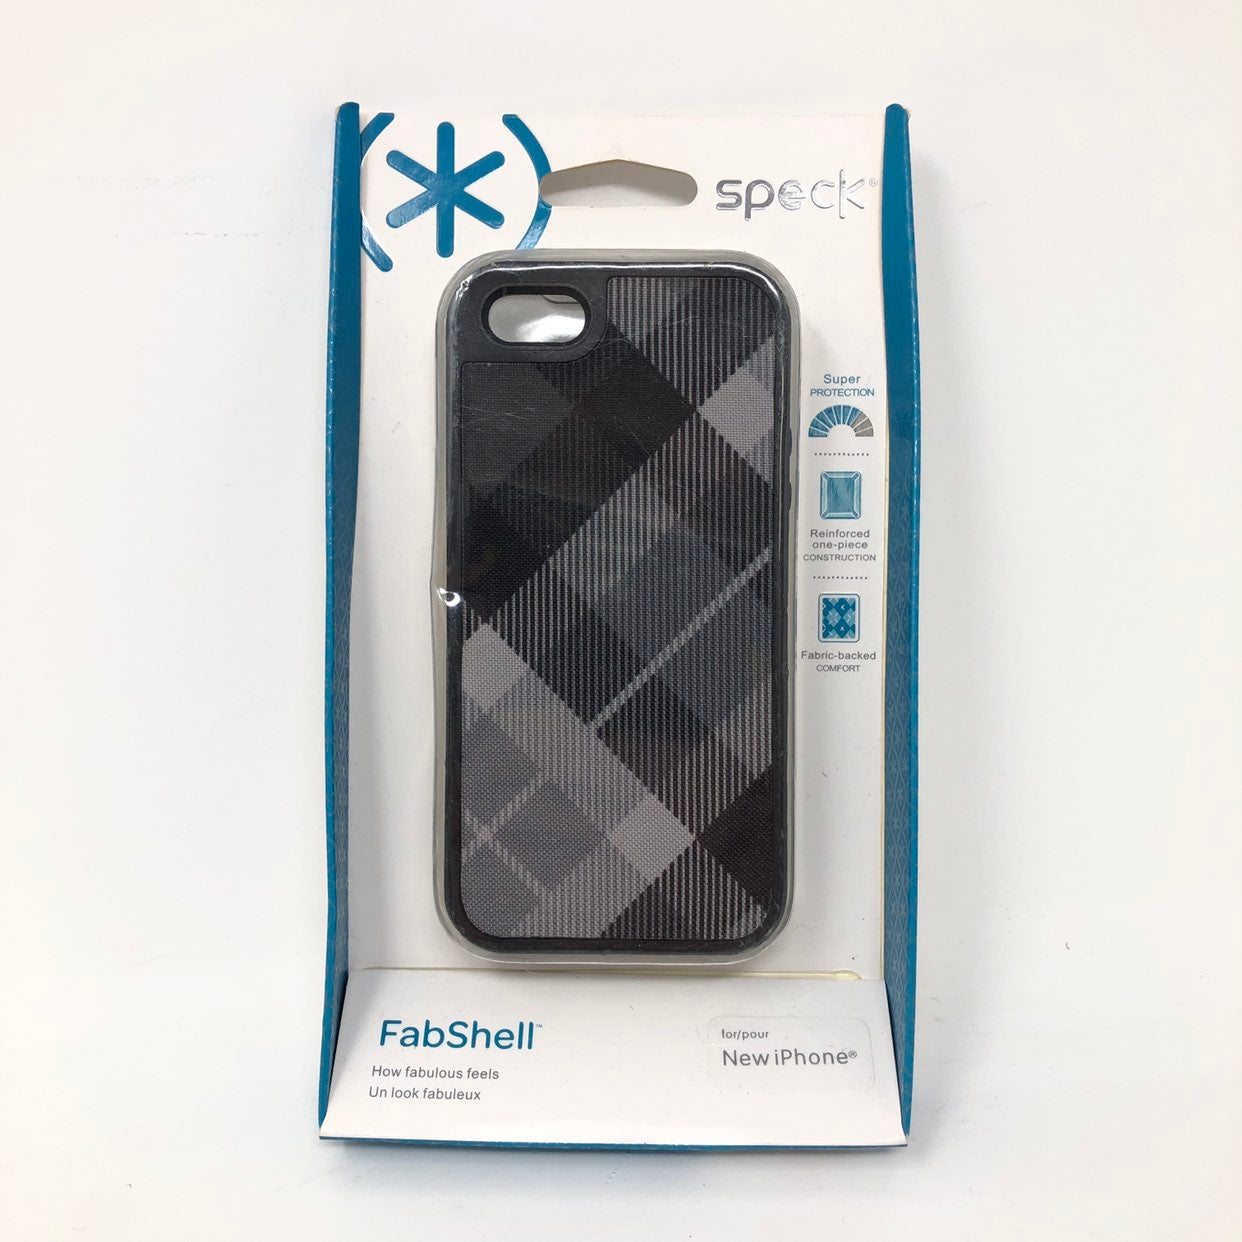 Fab Shell Speck Iphone 5 Phone Case